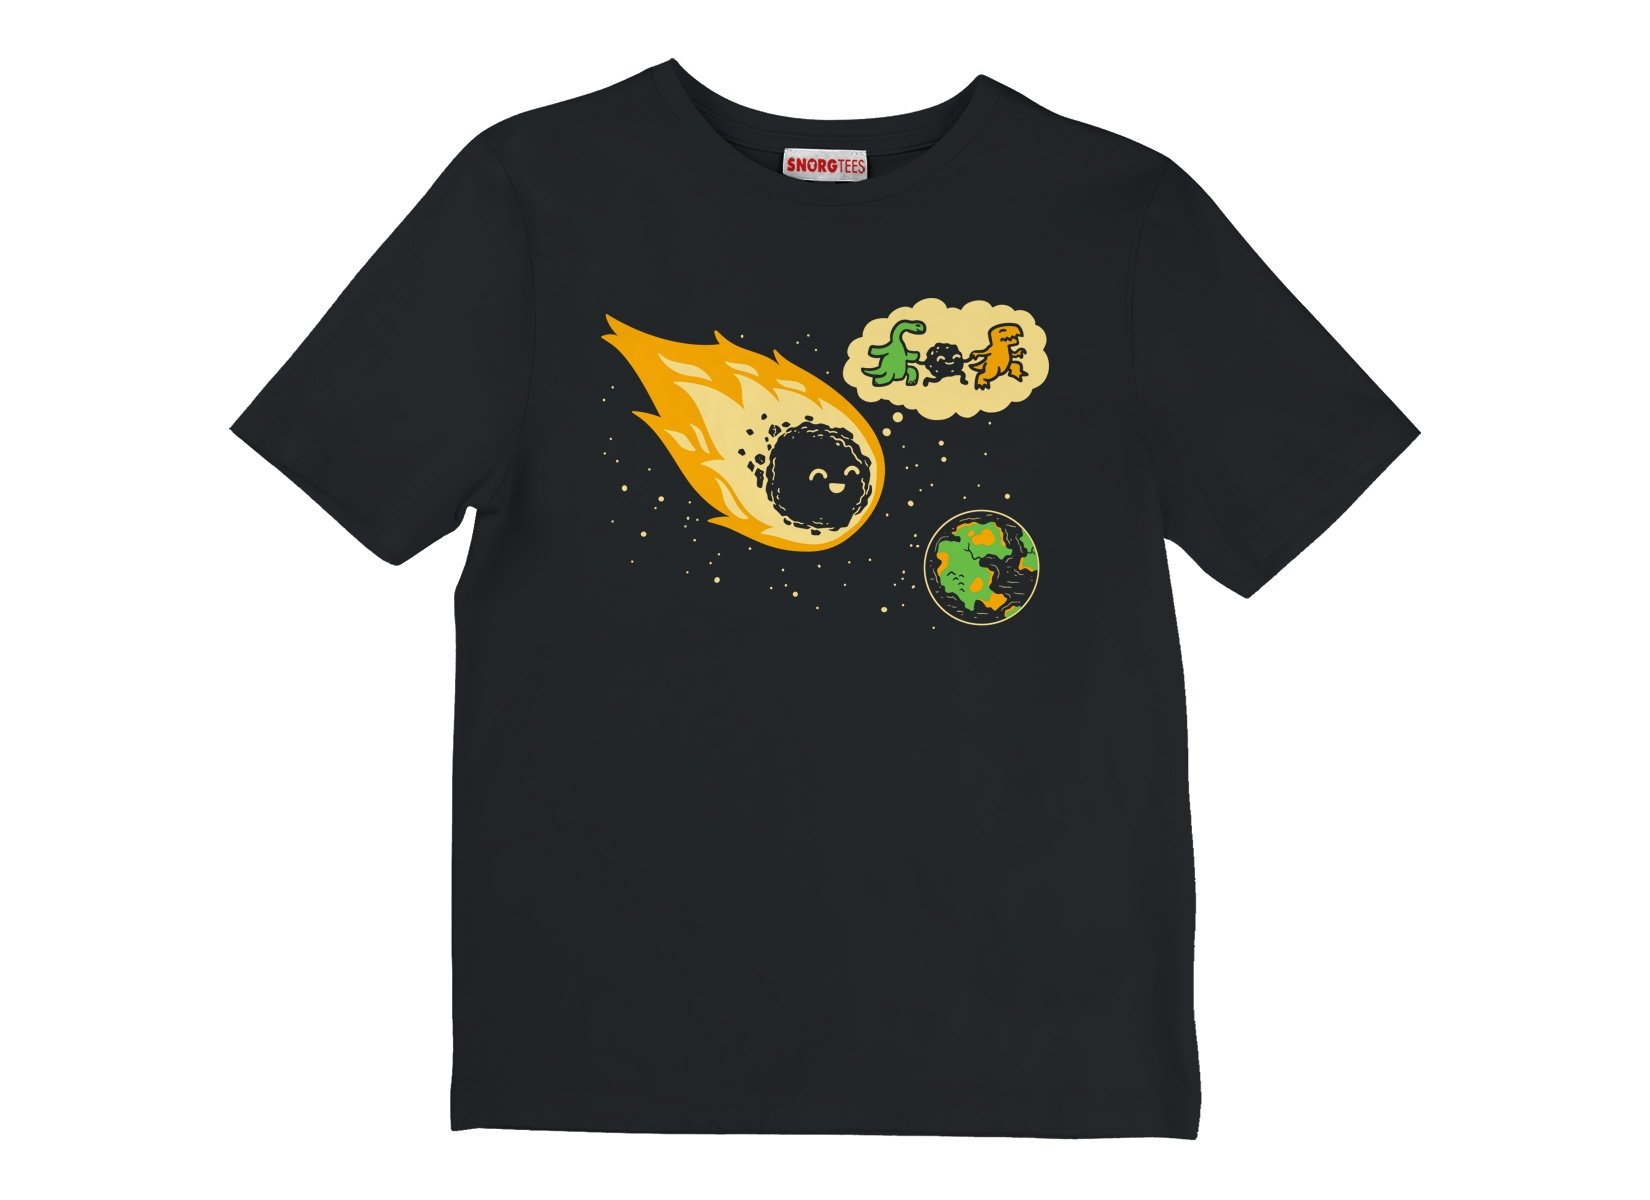 Meteor And Friends on Kids T-Shirt